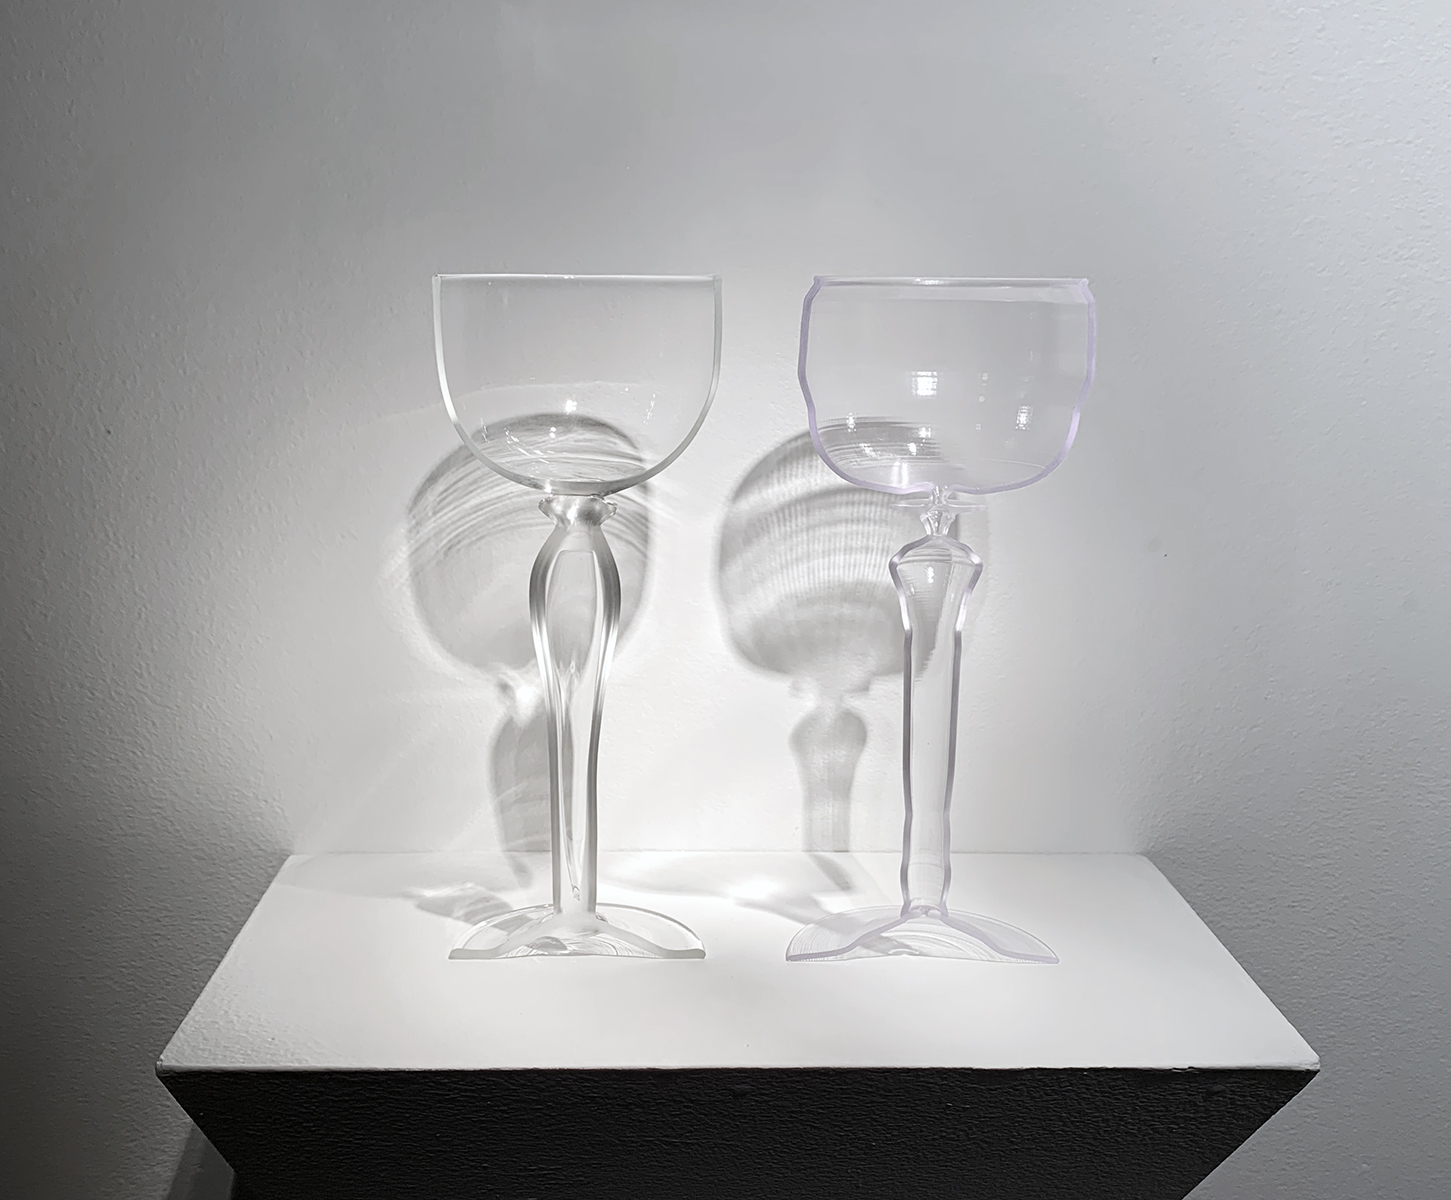 PLATE 16, GOBLET WITH LONG STEM